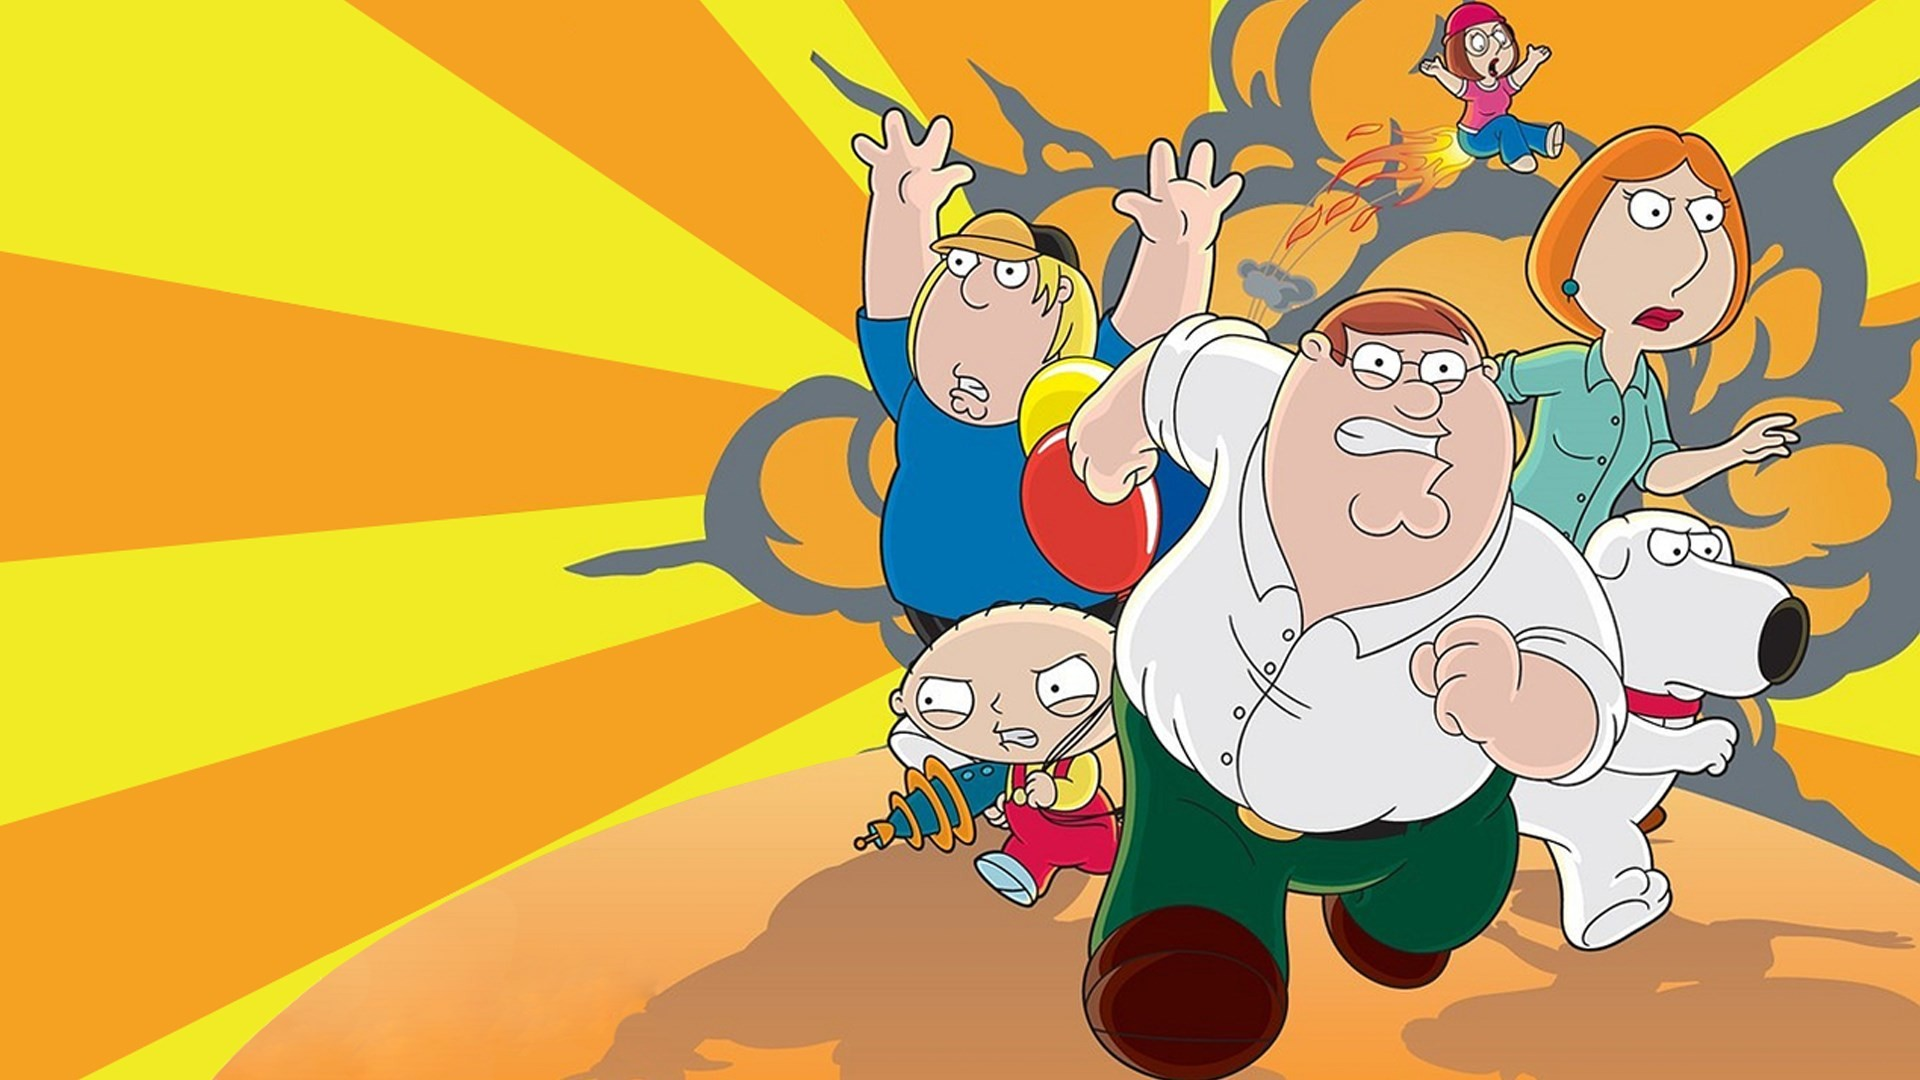 family guy hd wallpaper by Alston Nash-Williams (2017-03-05)